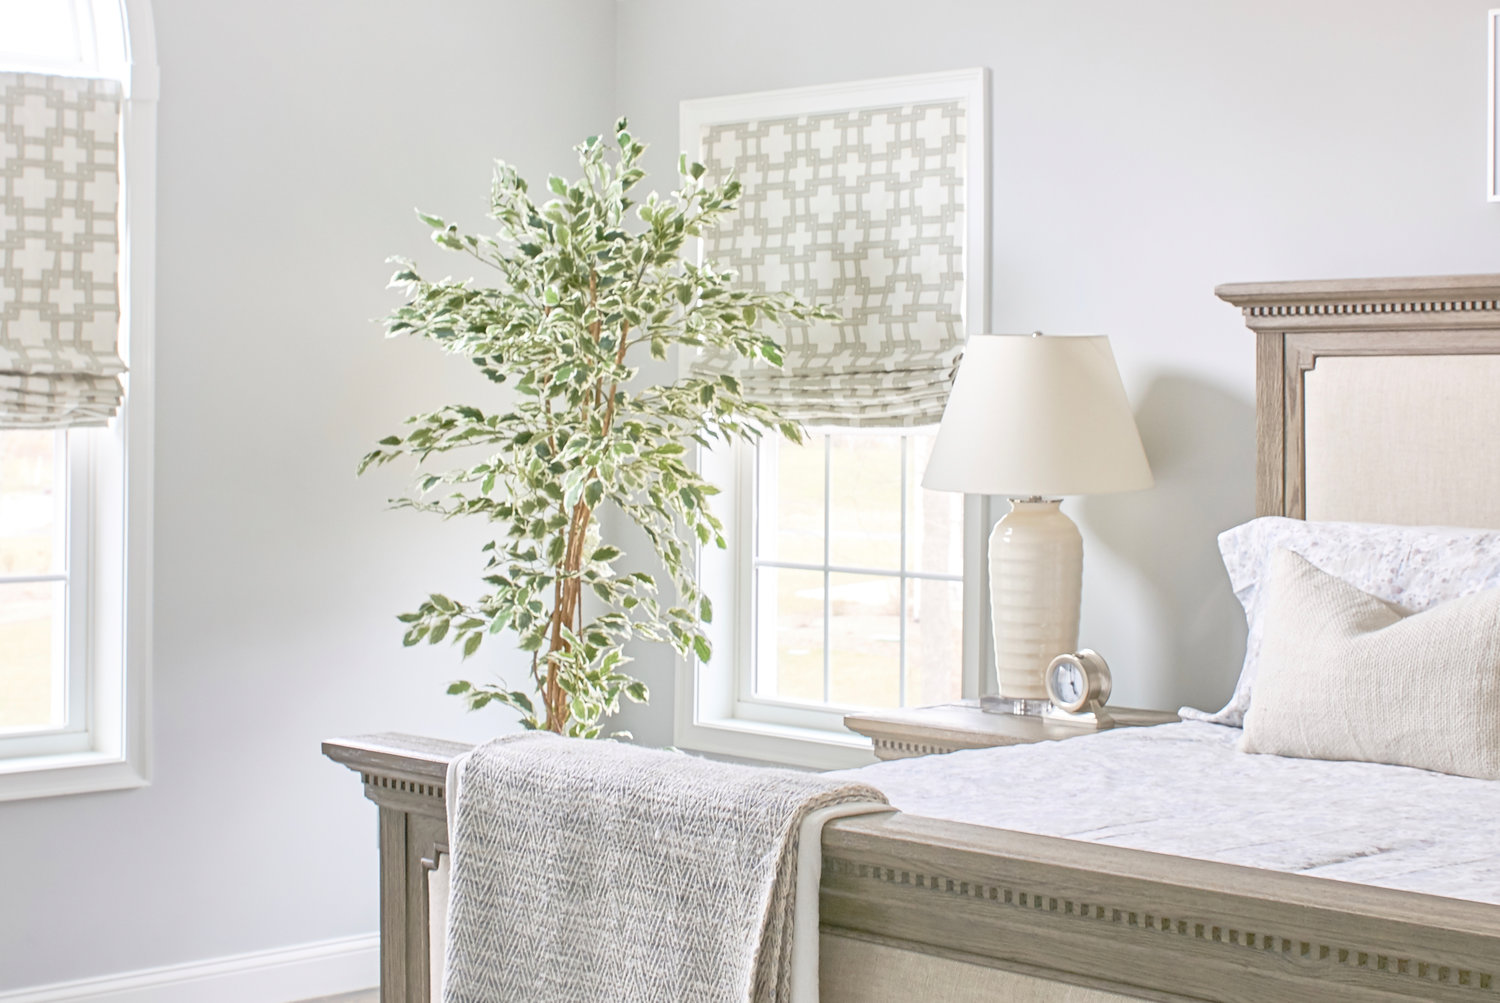 Linen shades with blue trim infuse the bright space with seaside 